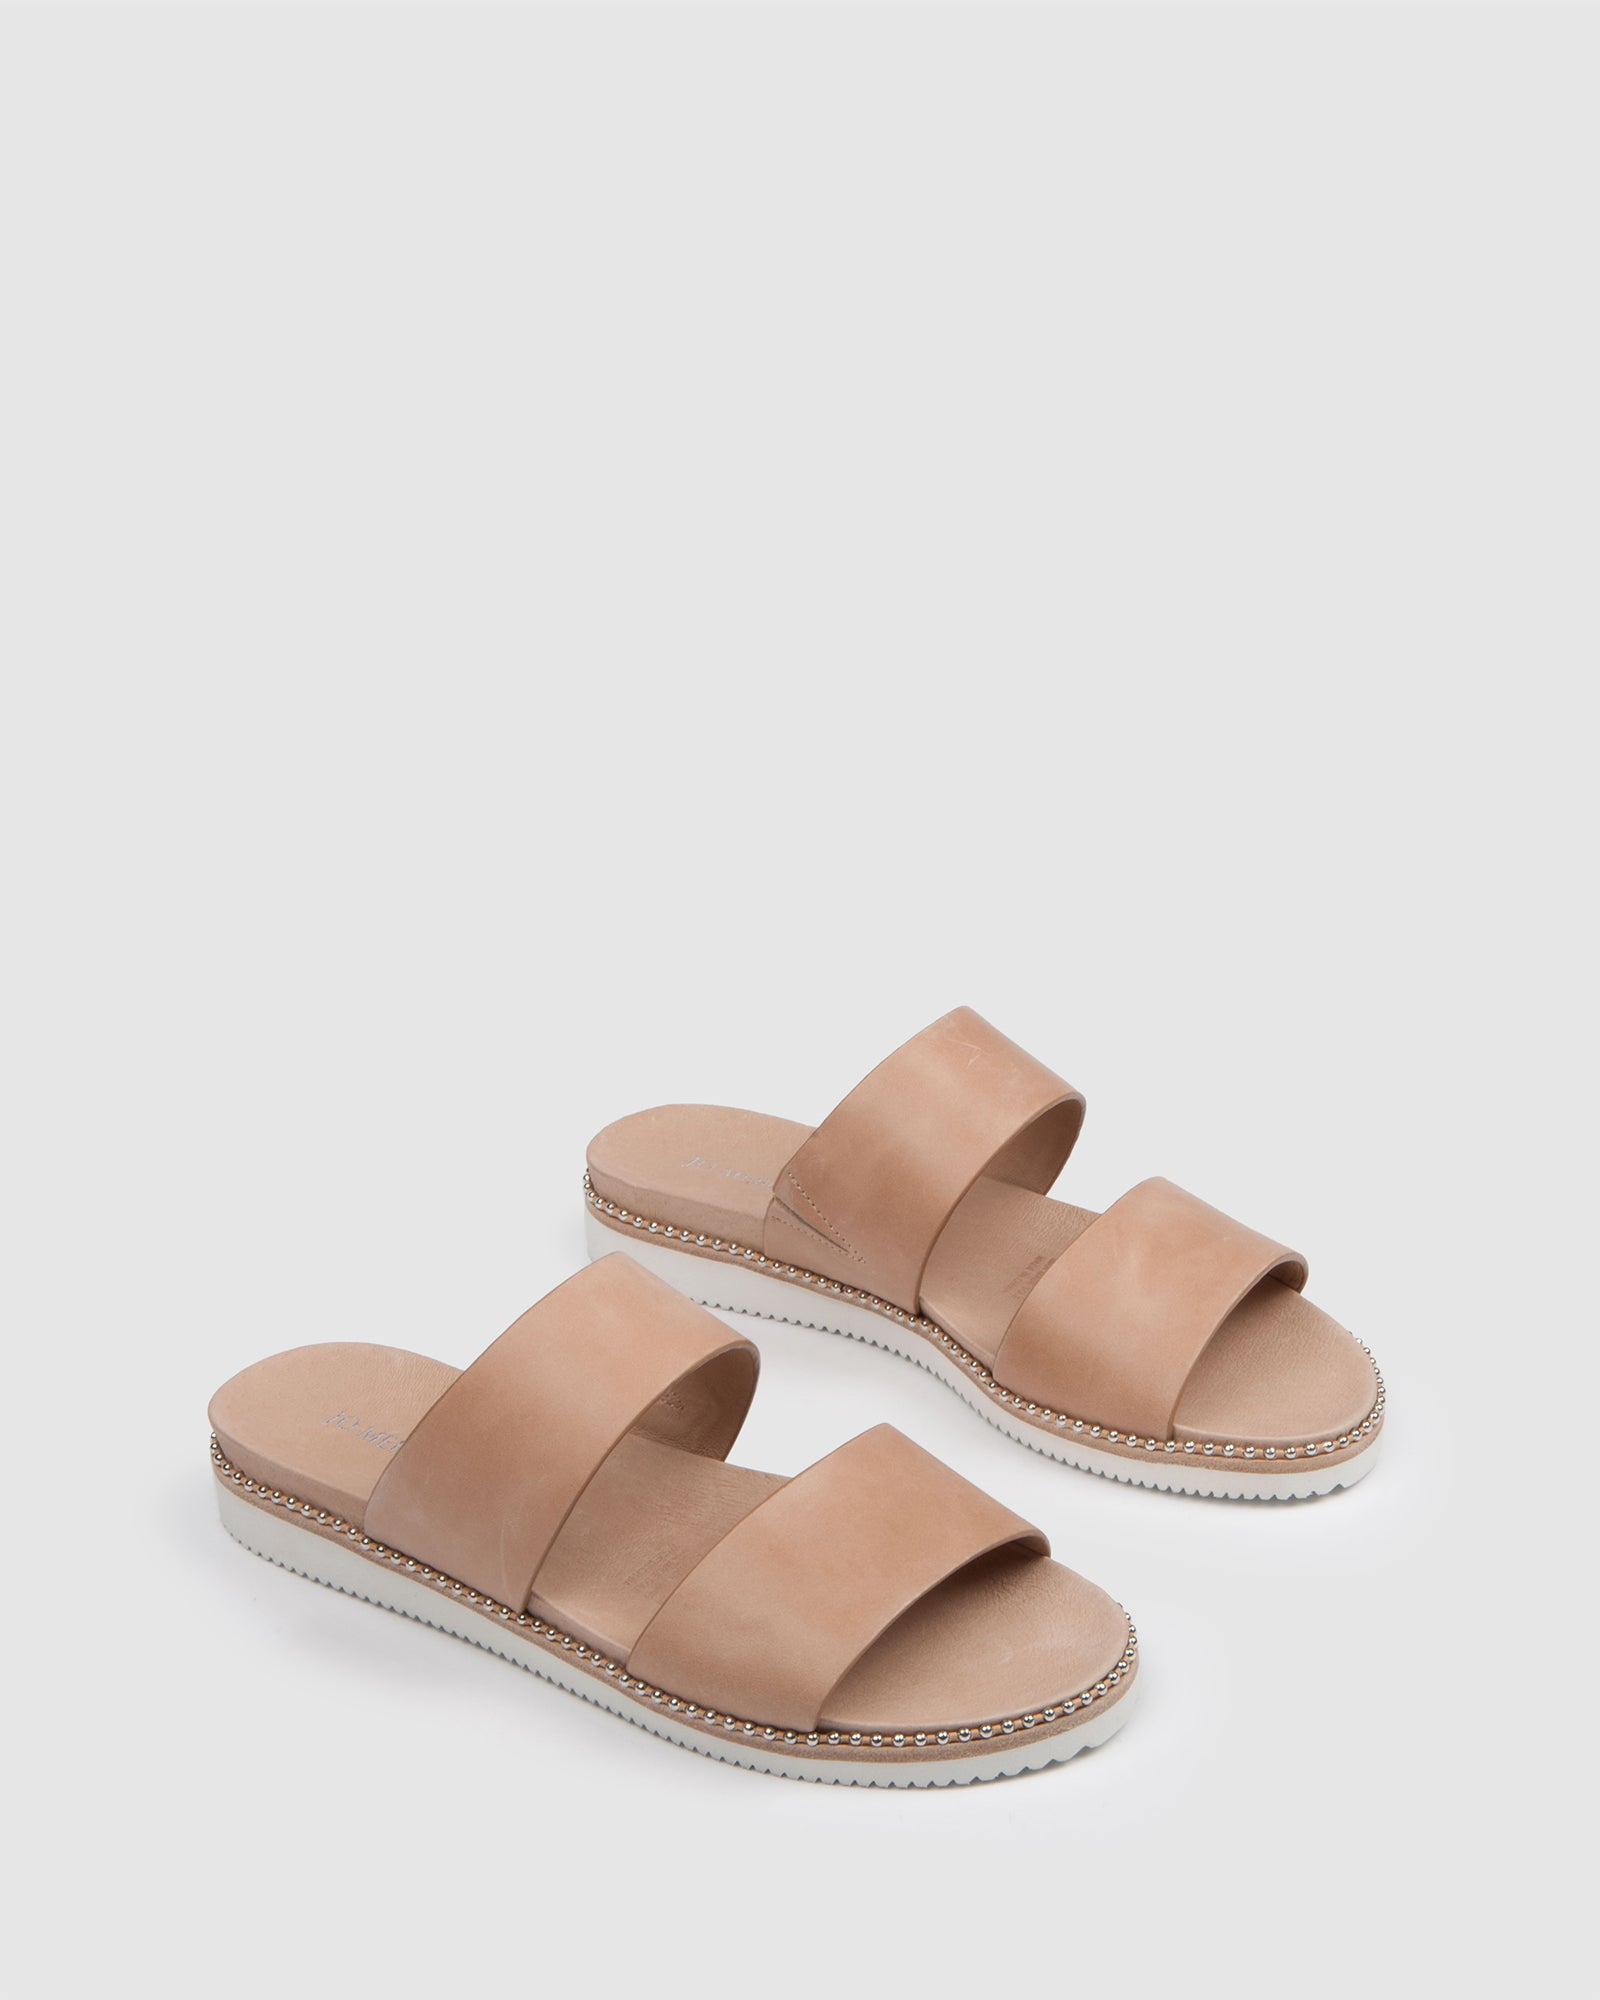 CAMEO FLAT SLIDES NATURAL LEATHER